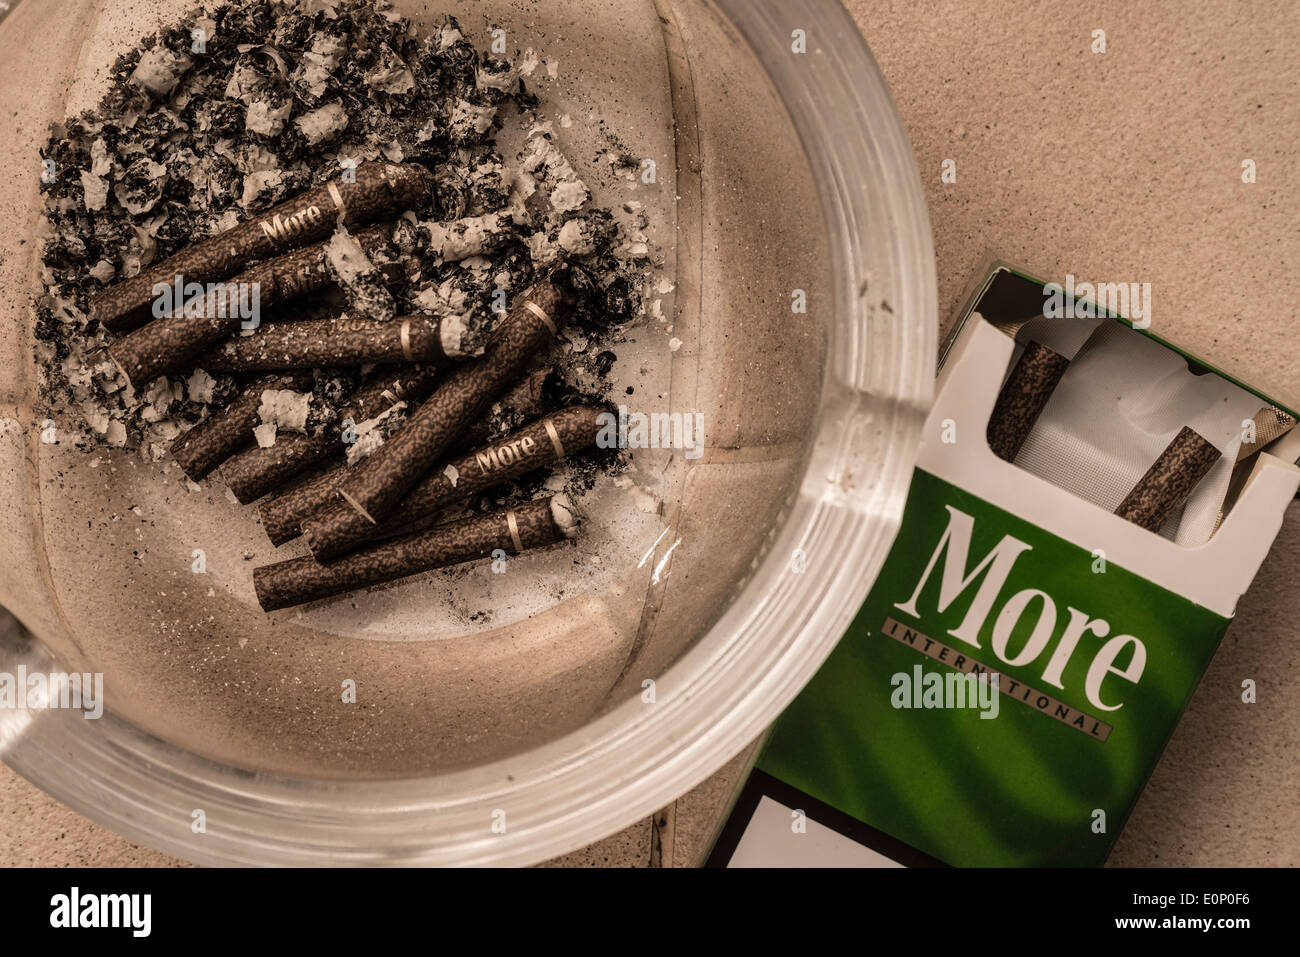 Online Parliament cigarette coupons